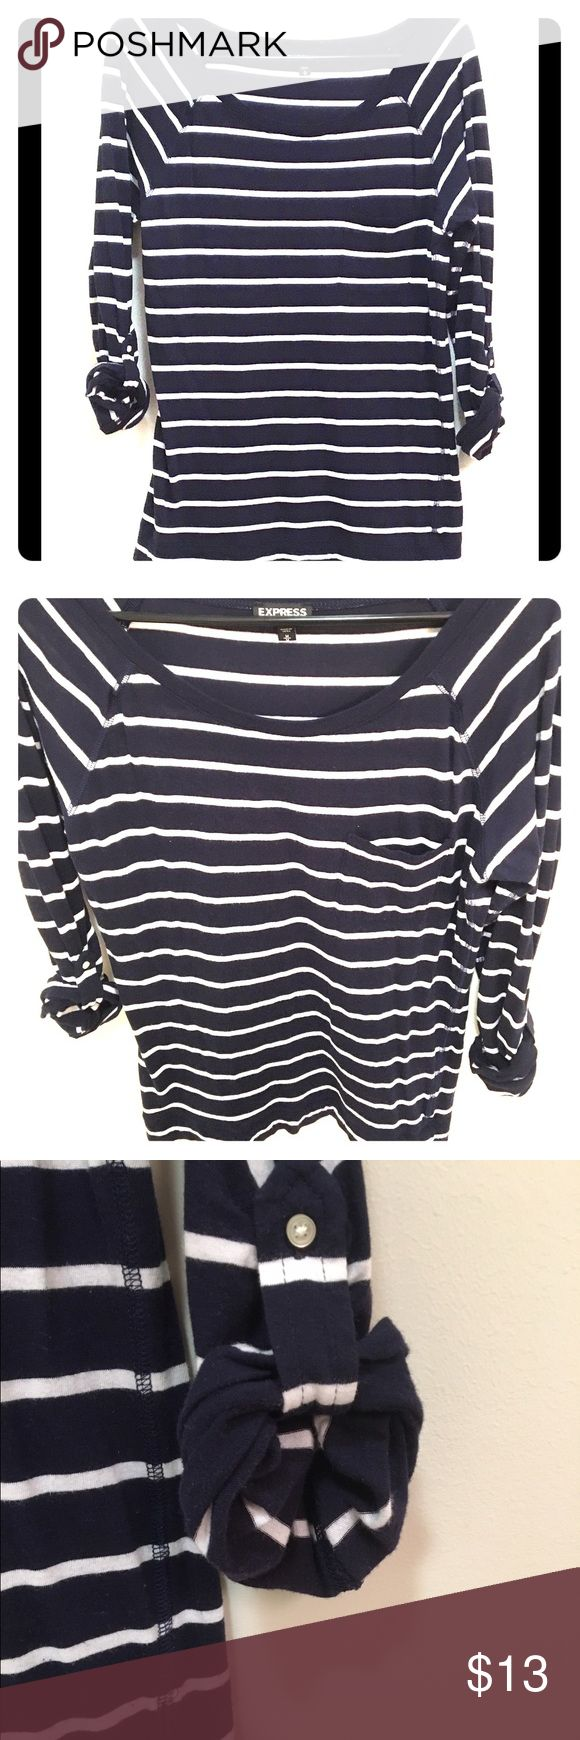 3/4 Sleeve Navy Tee Striped pocket tee with cuffed button sleeve (can unlink to make full sleeve!) Express Tops Tees - Long Sleeve